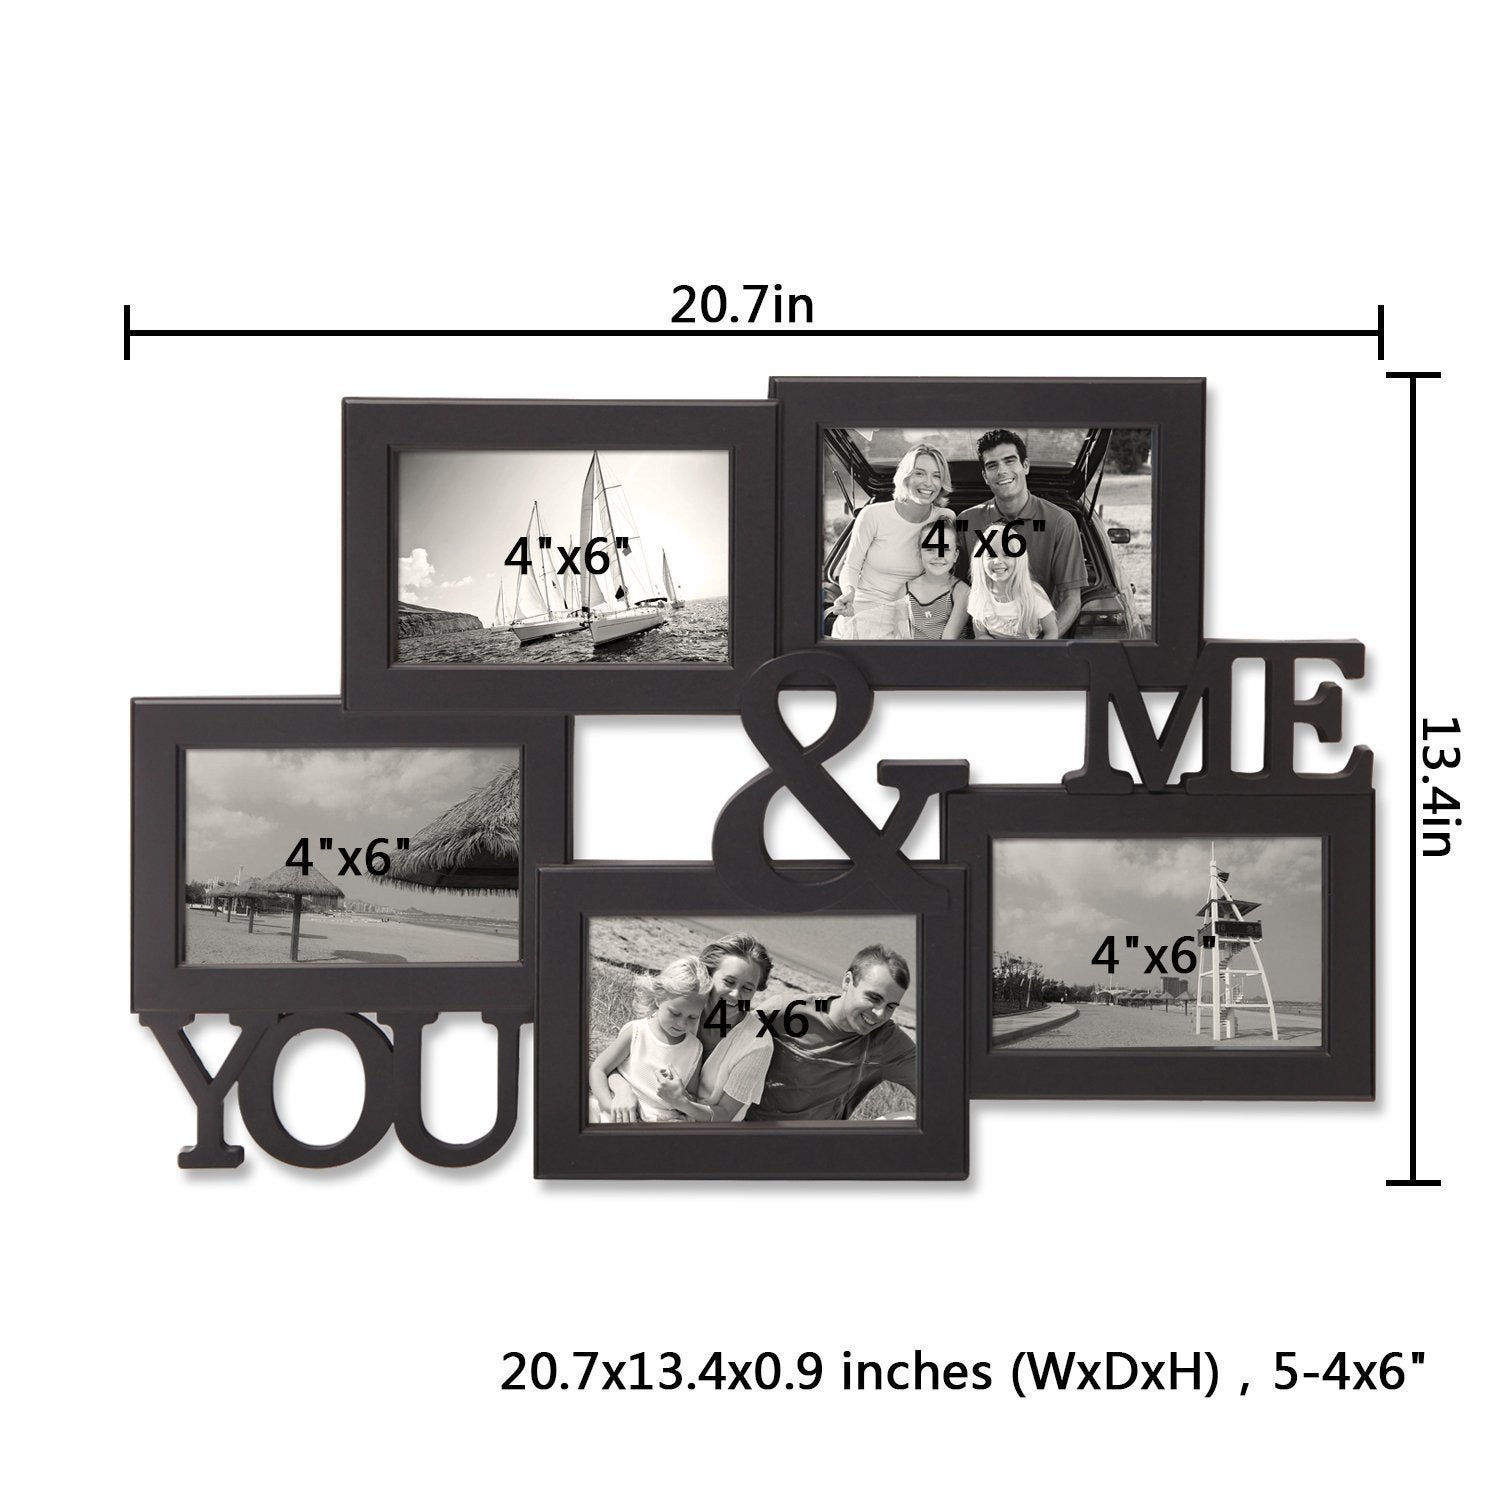 Adeco Five-opening Plastic Black Wall Hanging \'You and Me\' Photo ...